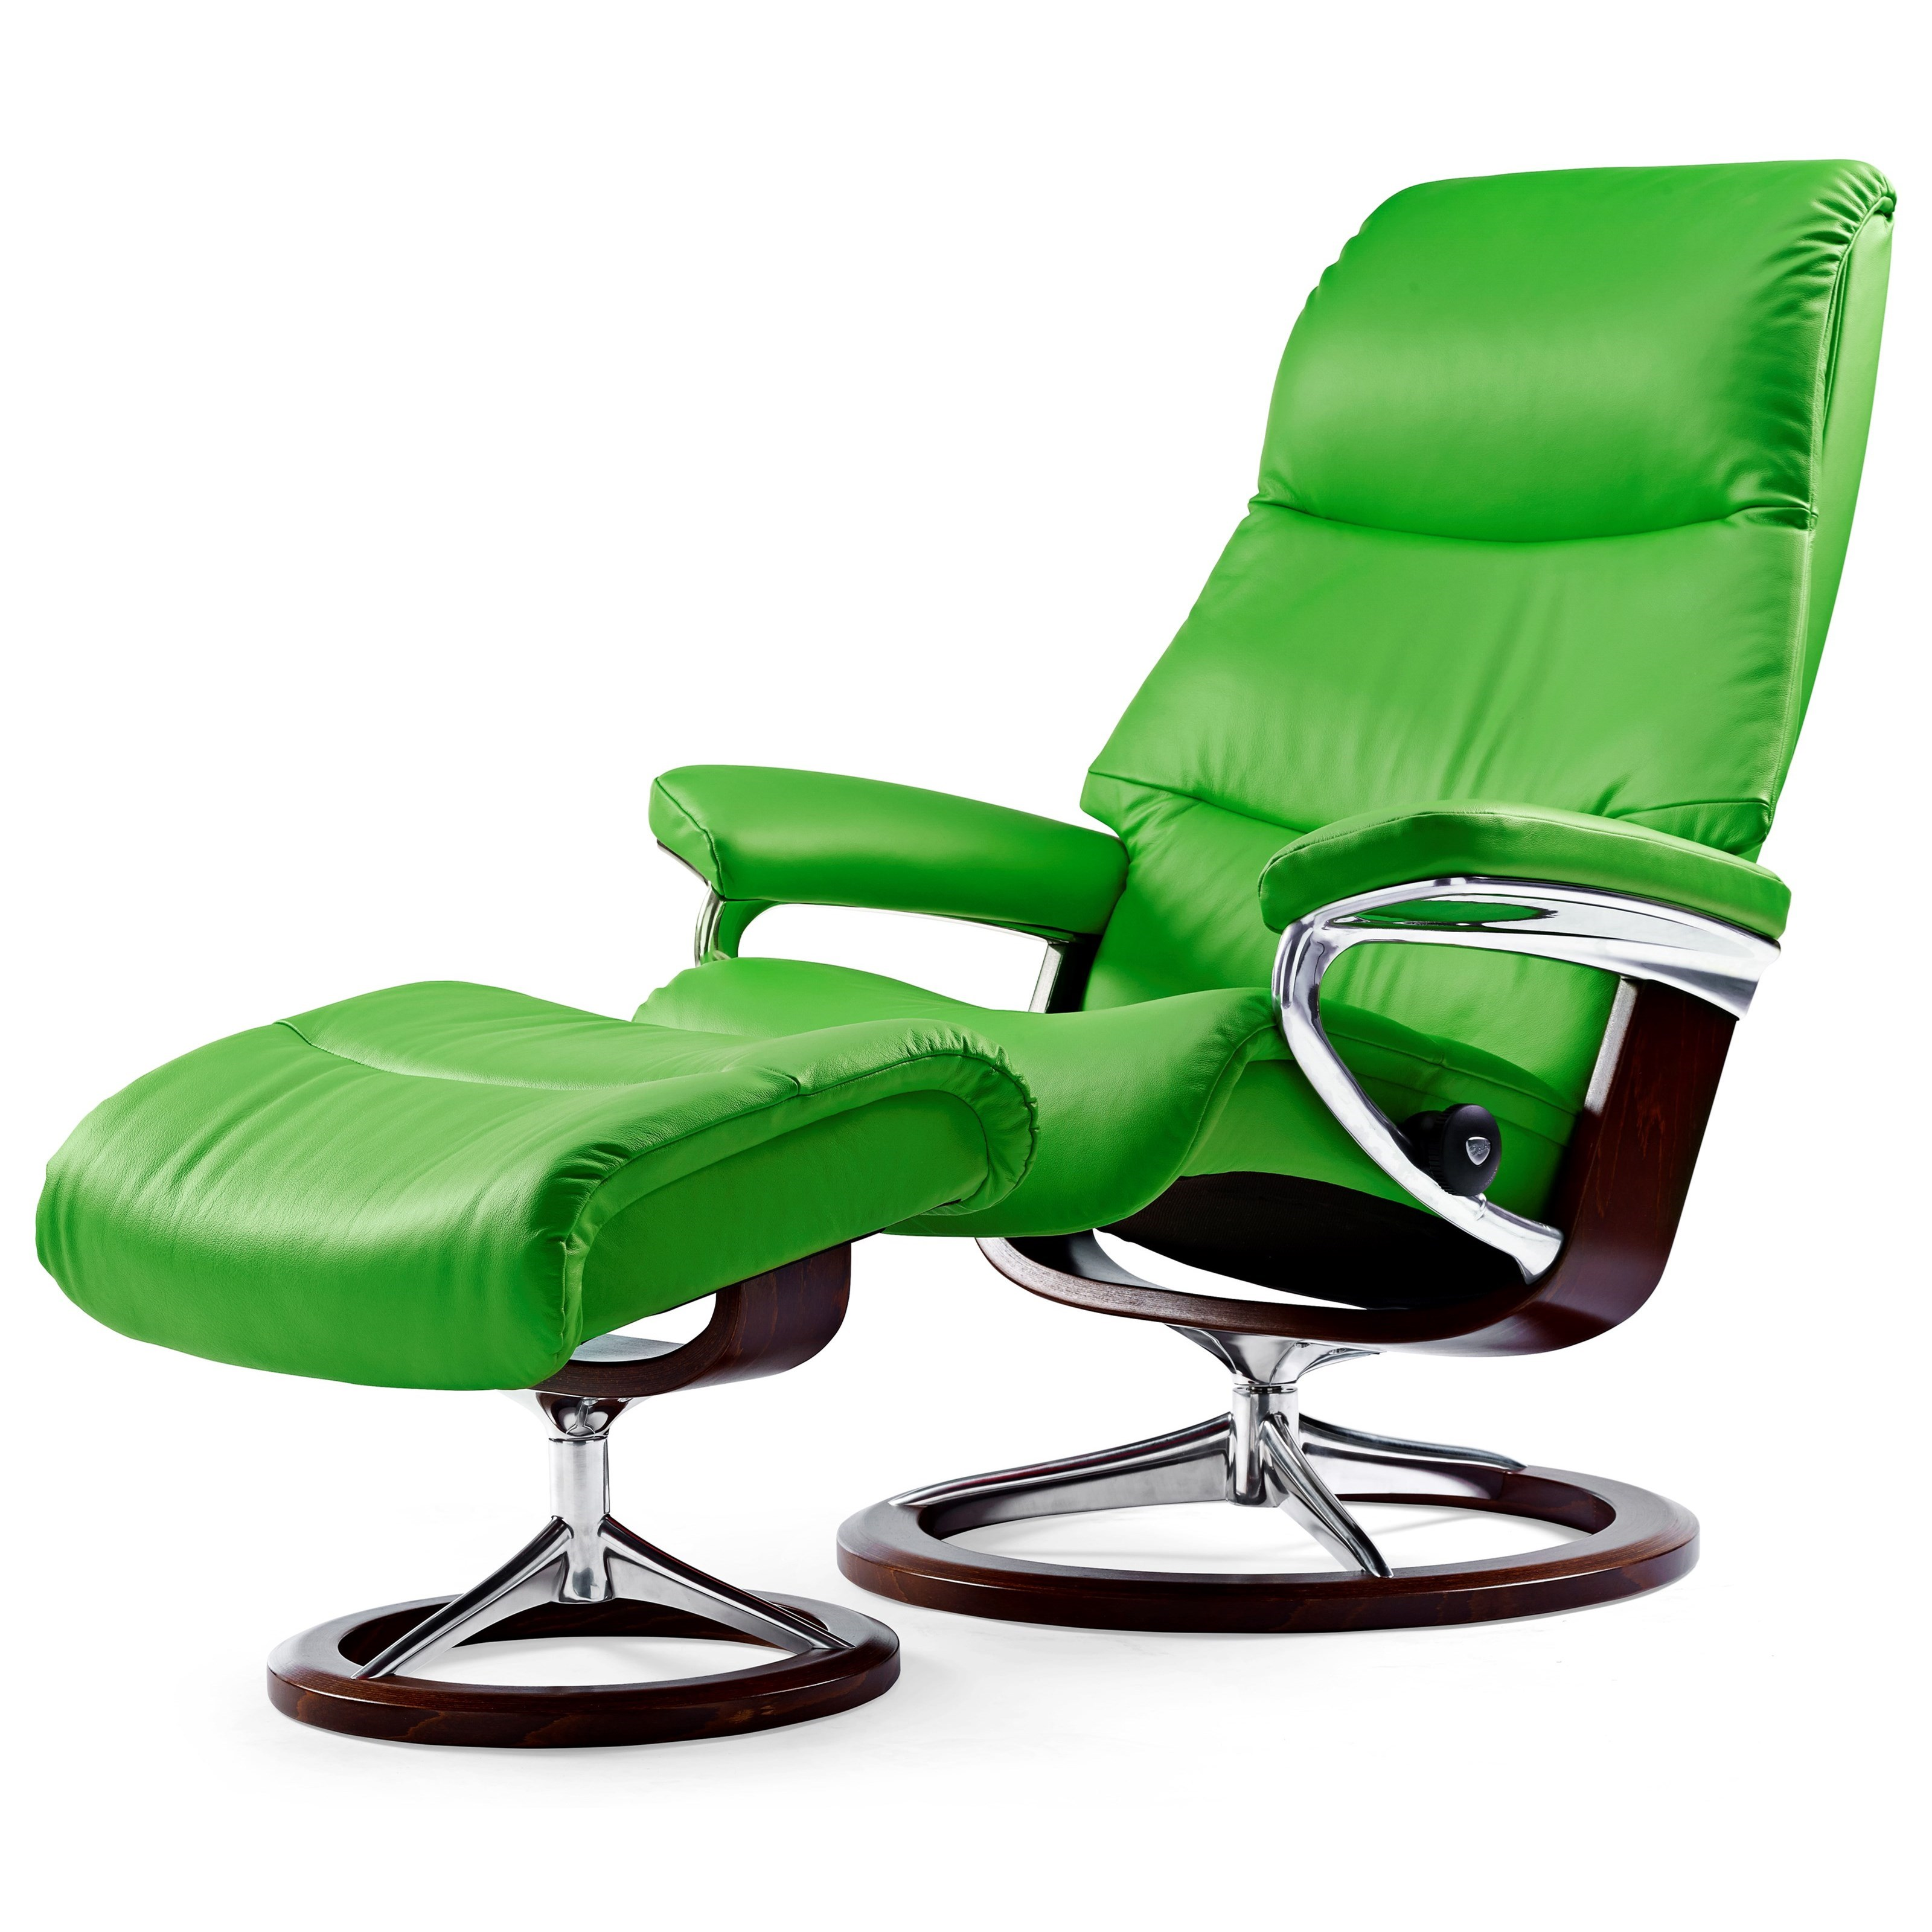 View Small Chair & Ottoman with Signature Base by Stressless at Jordan's Home Furnishings